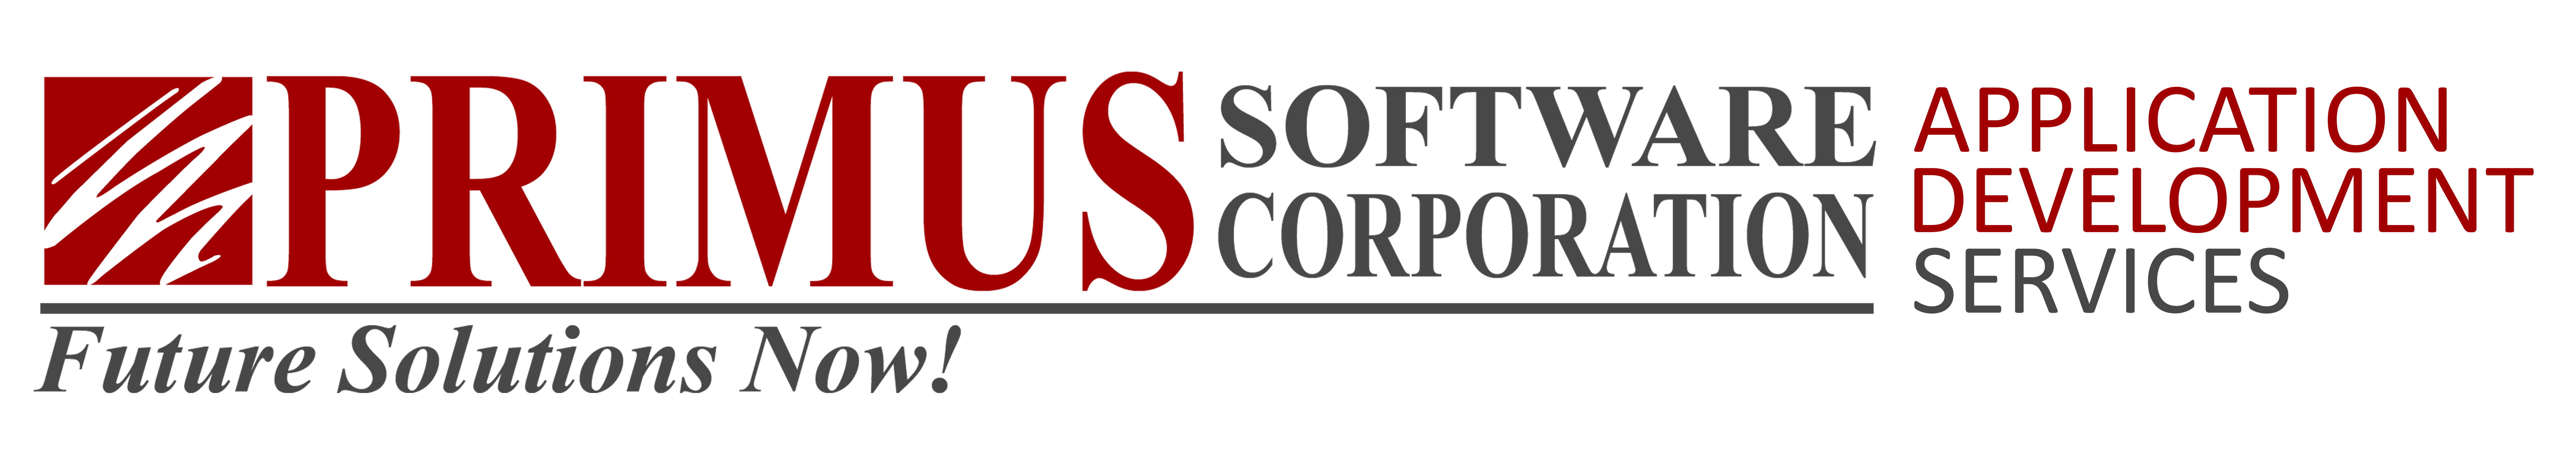 Primus Software Corporation